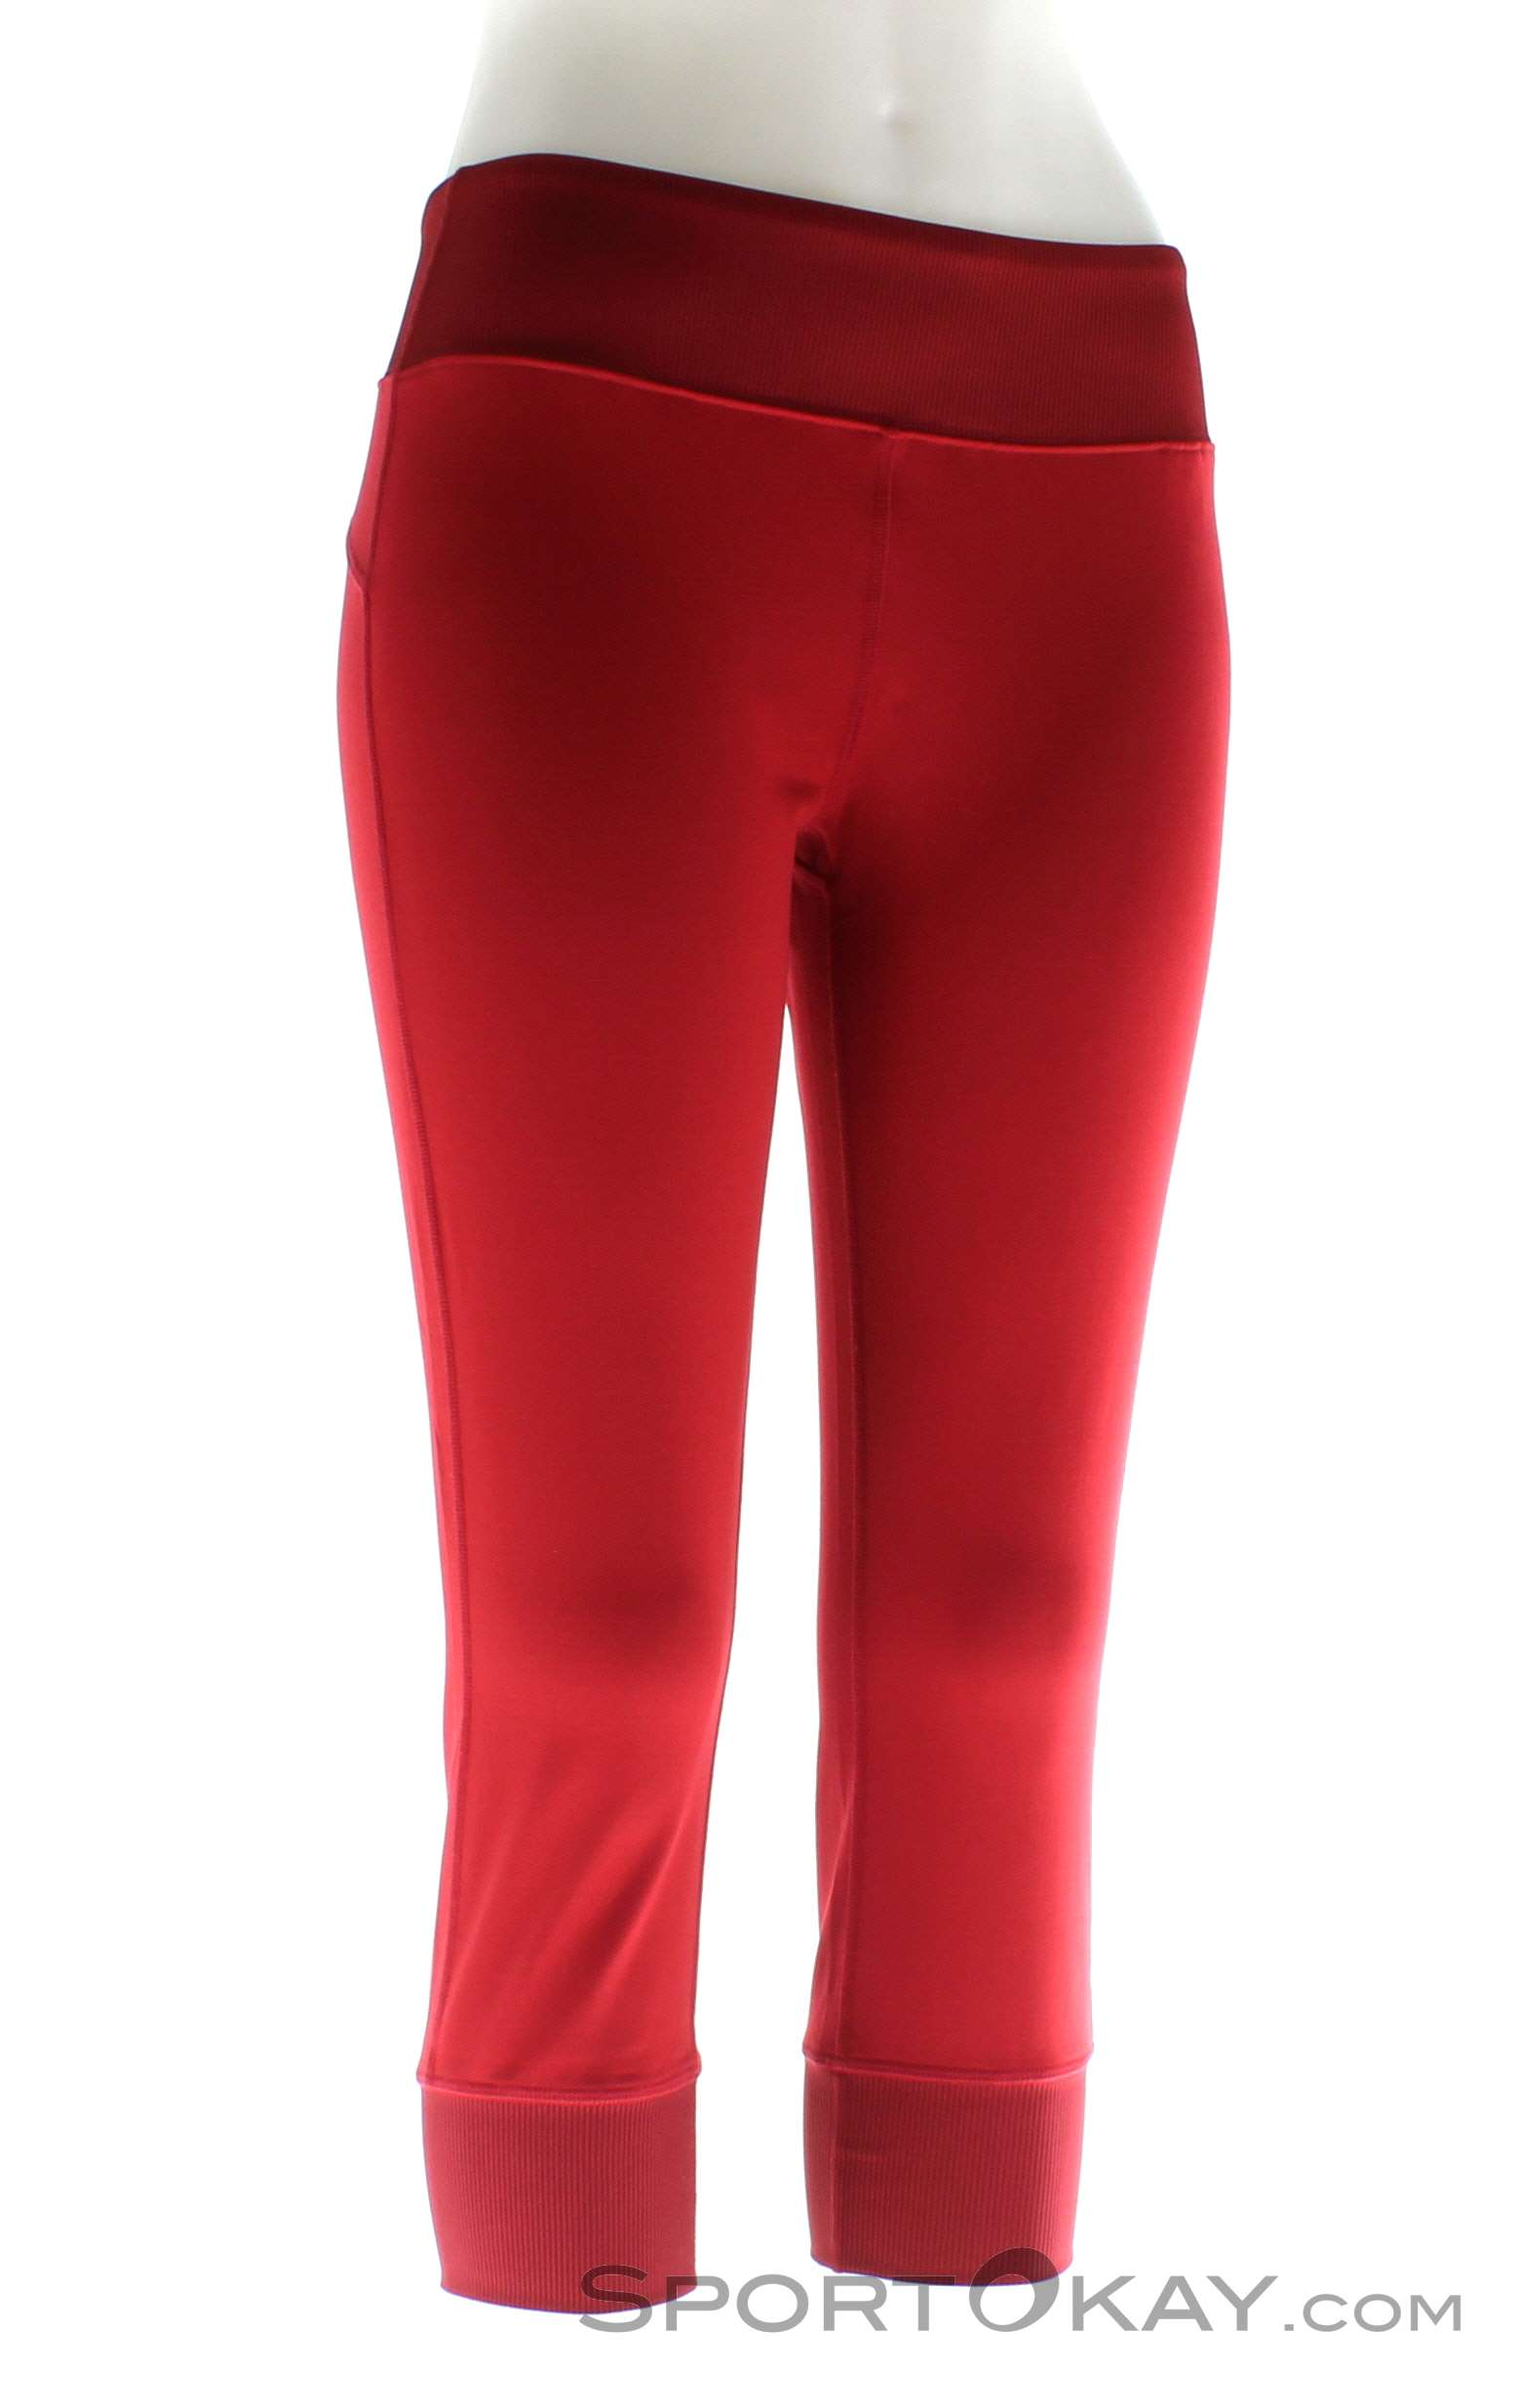 Black Diamond Levitation Capris Damen Kletterhose, Black Diamond, Rot, , Damen, 0056-10609, 5637580033, 793661299448, N1-01.jpg